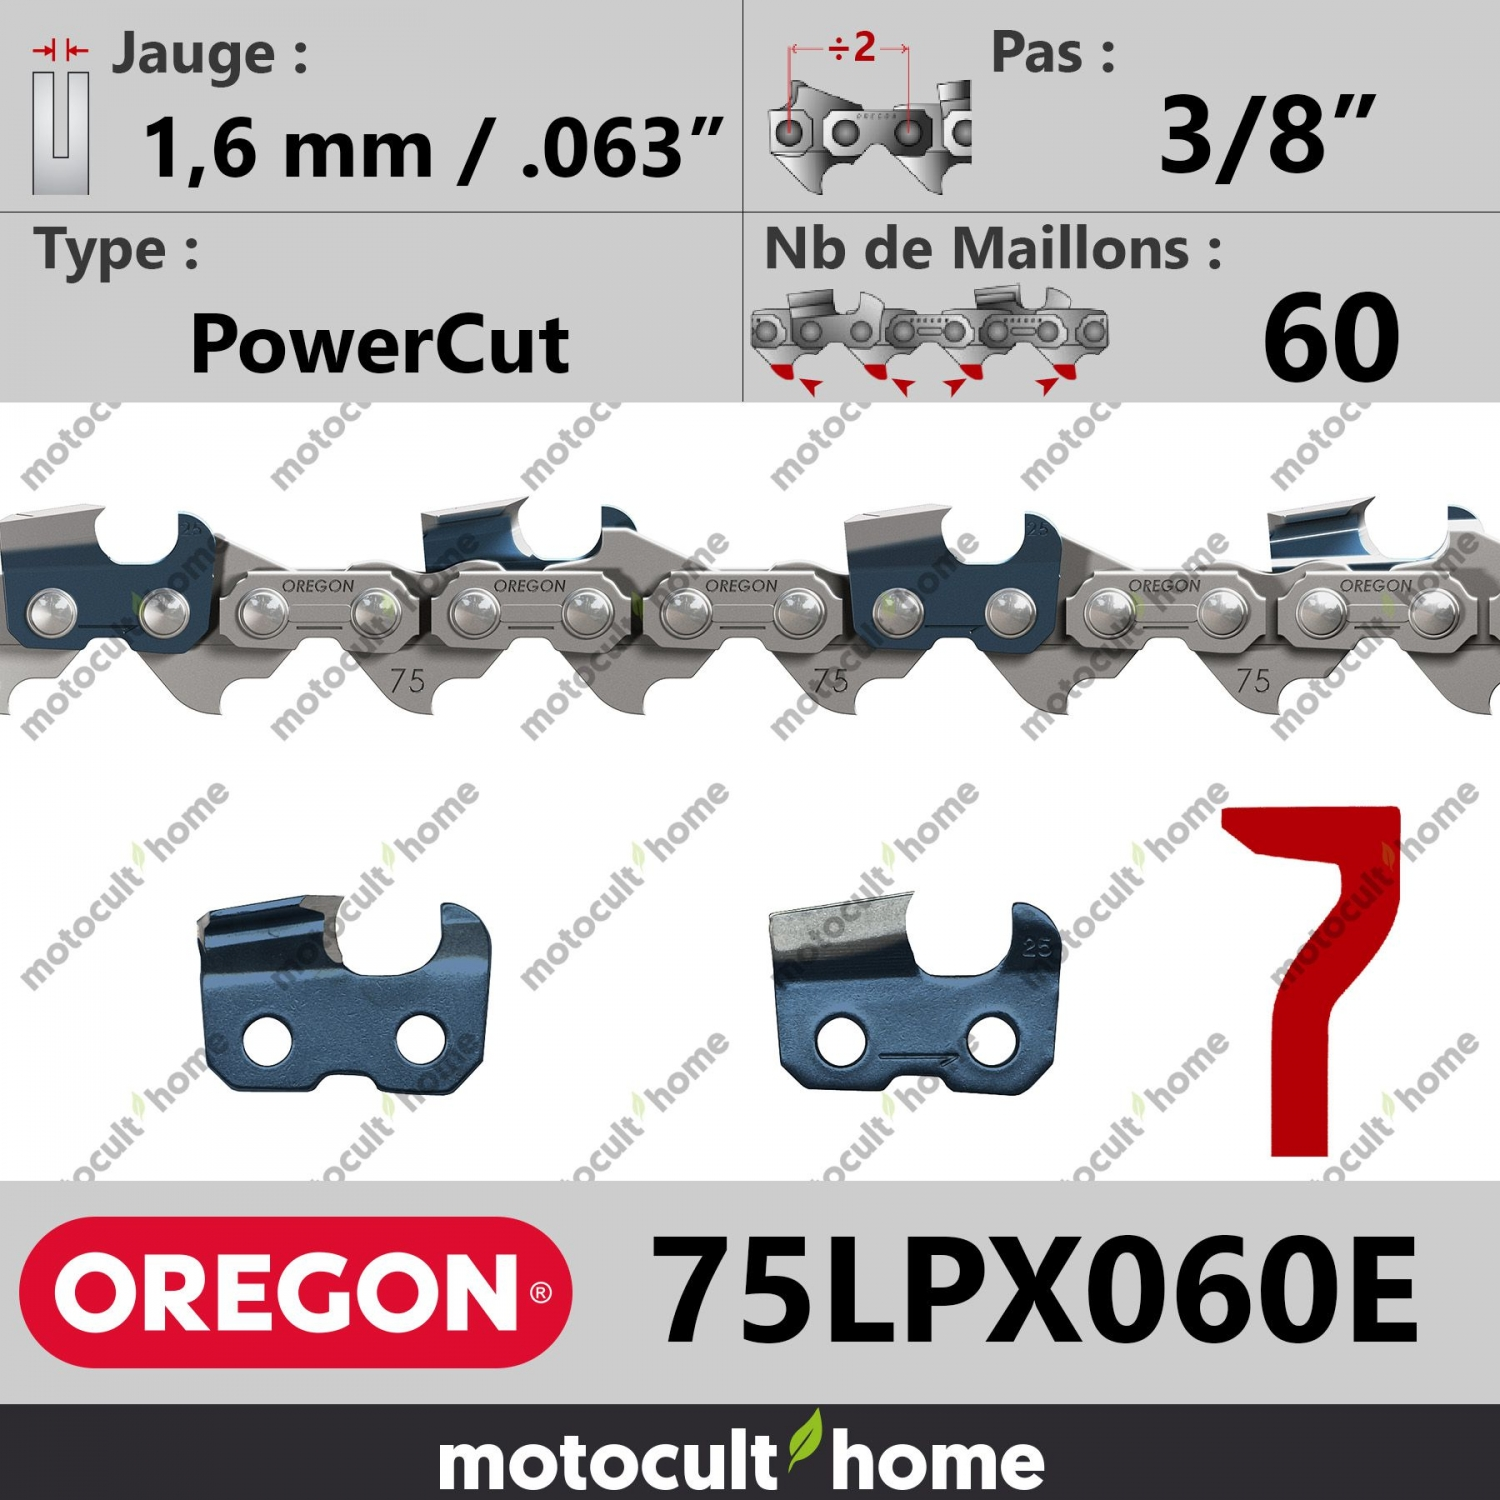 Cha ne de tron onneuse oregon 75lpx060e powercut 3 8 1 6 mm 60 maillons motocult 39 home - Chaine tronconneuse oregon ...